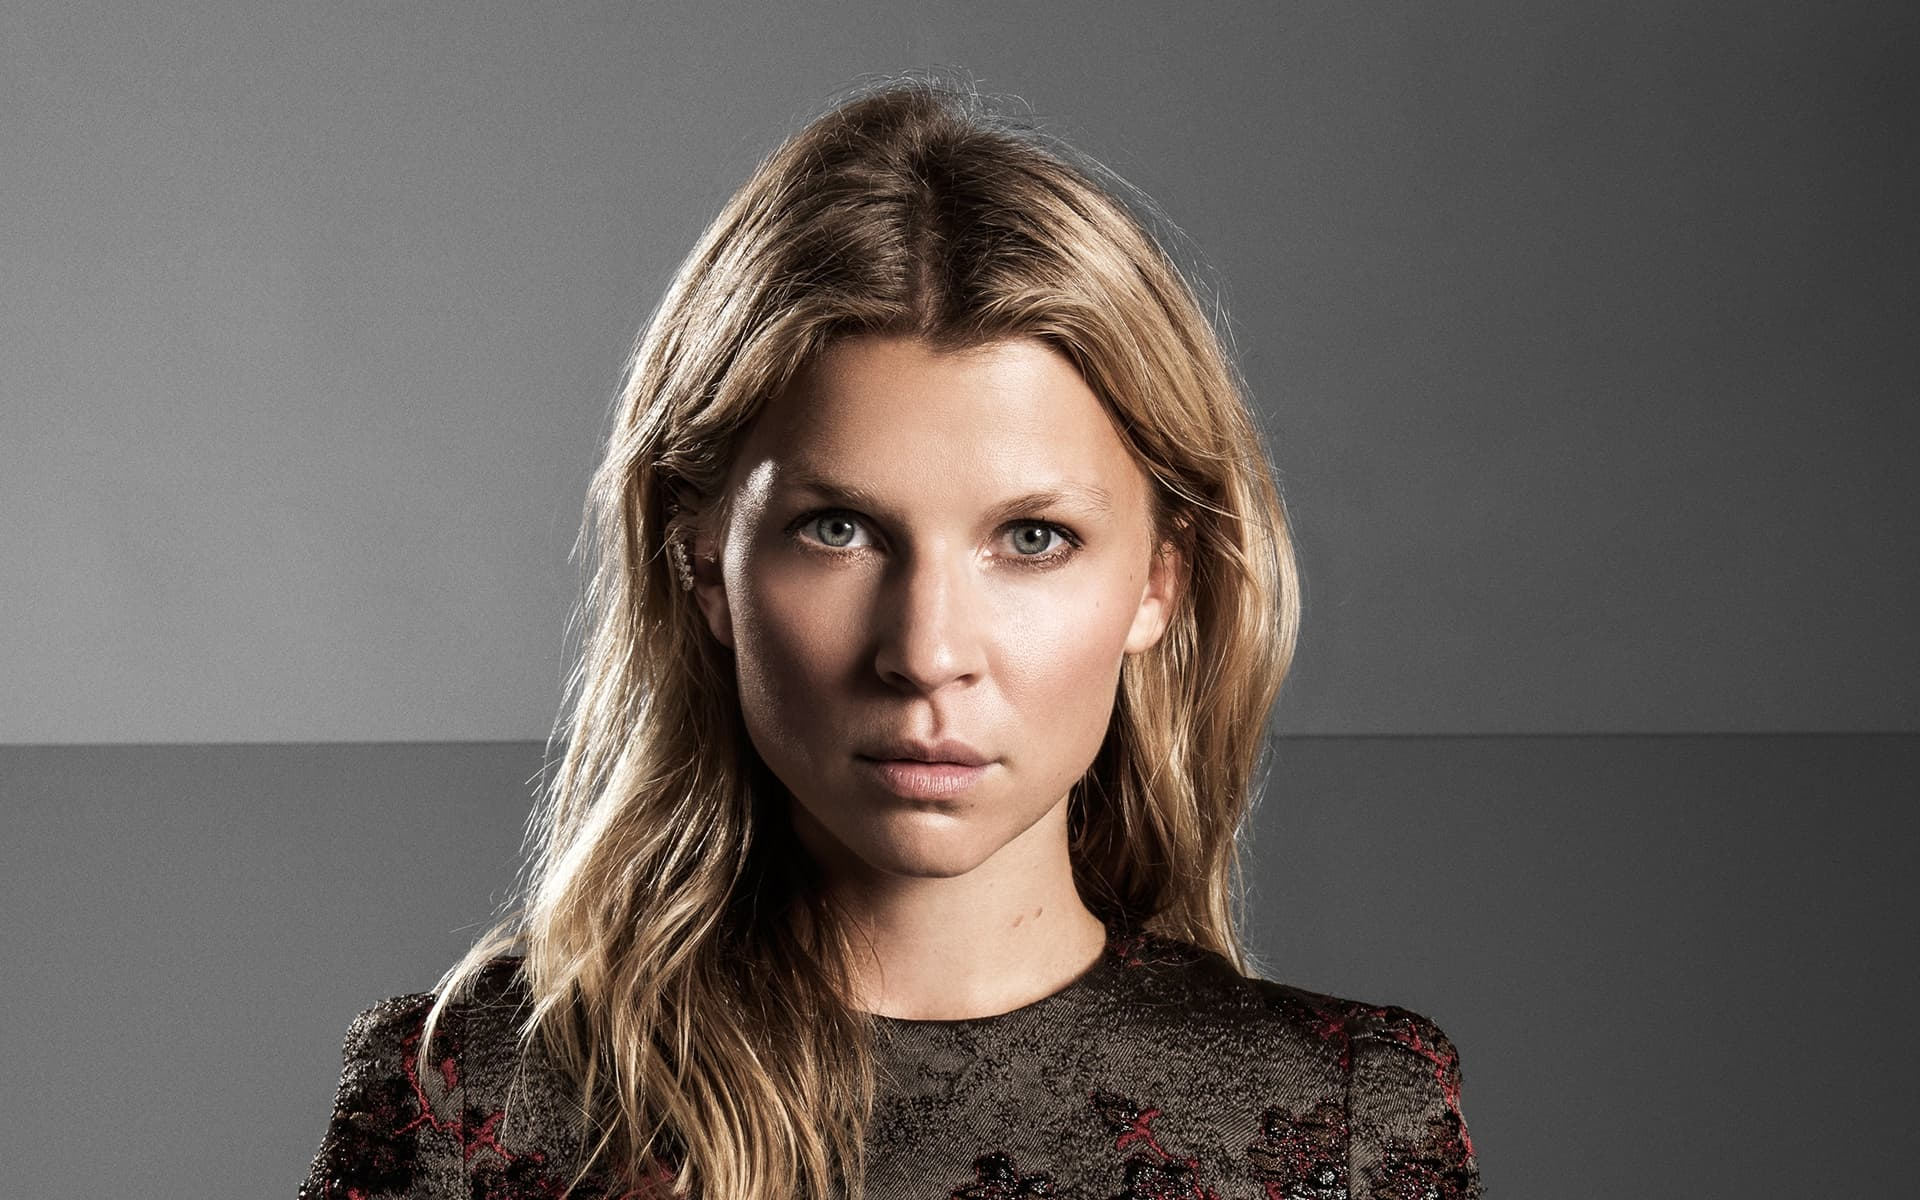 1920x1200 - Clemence Poesy Wallpapers 4